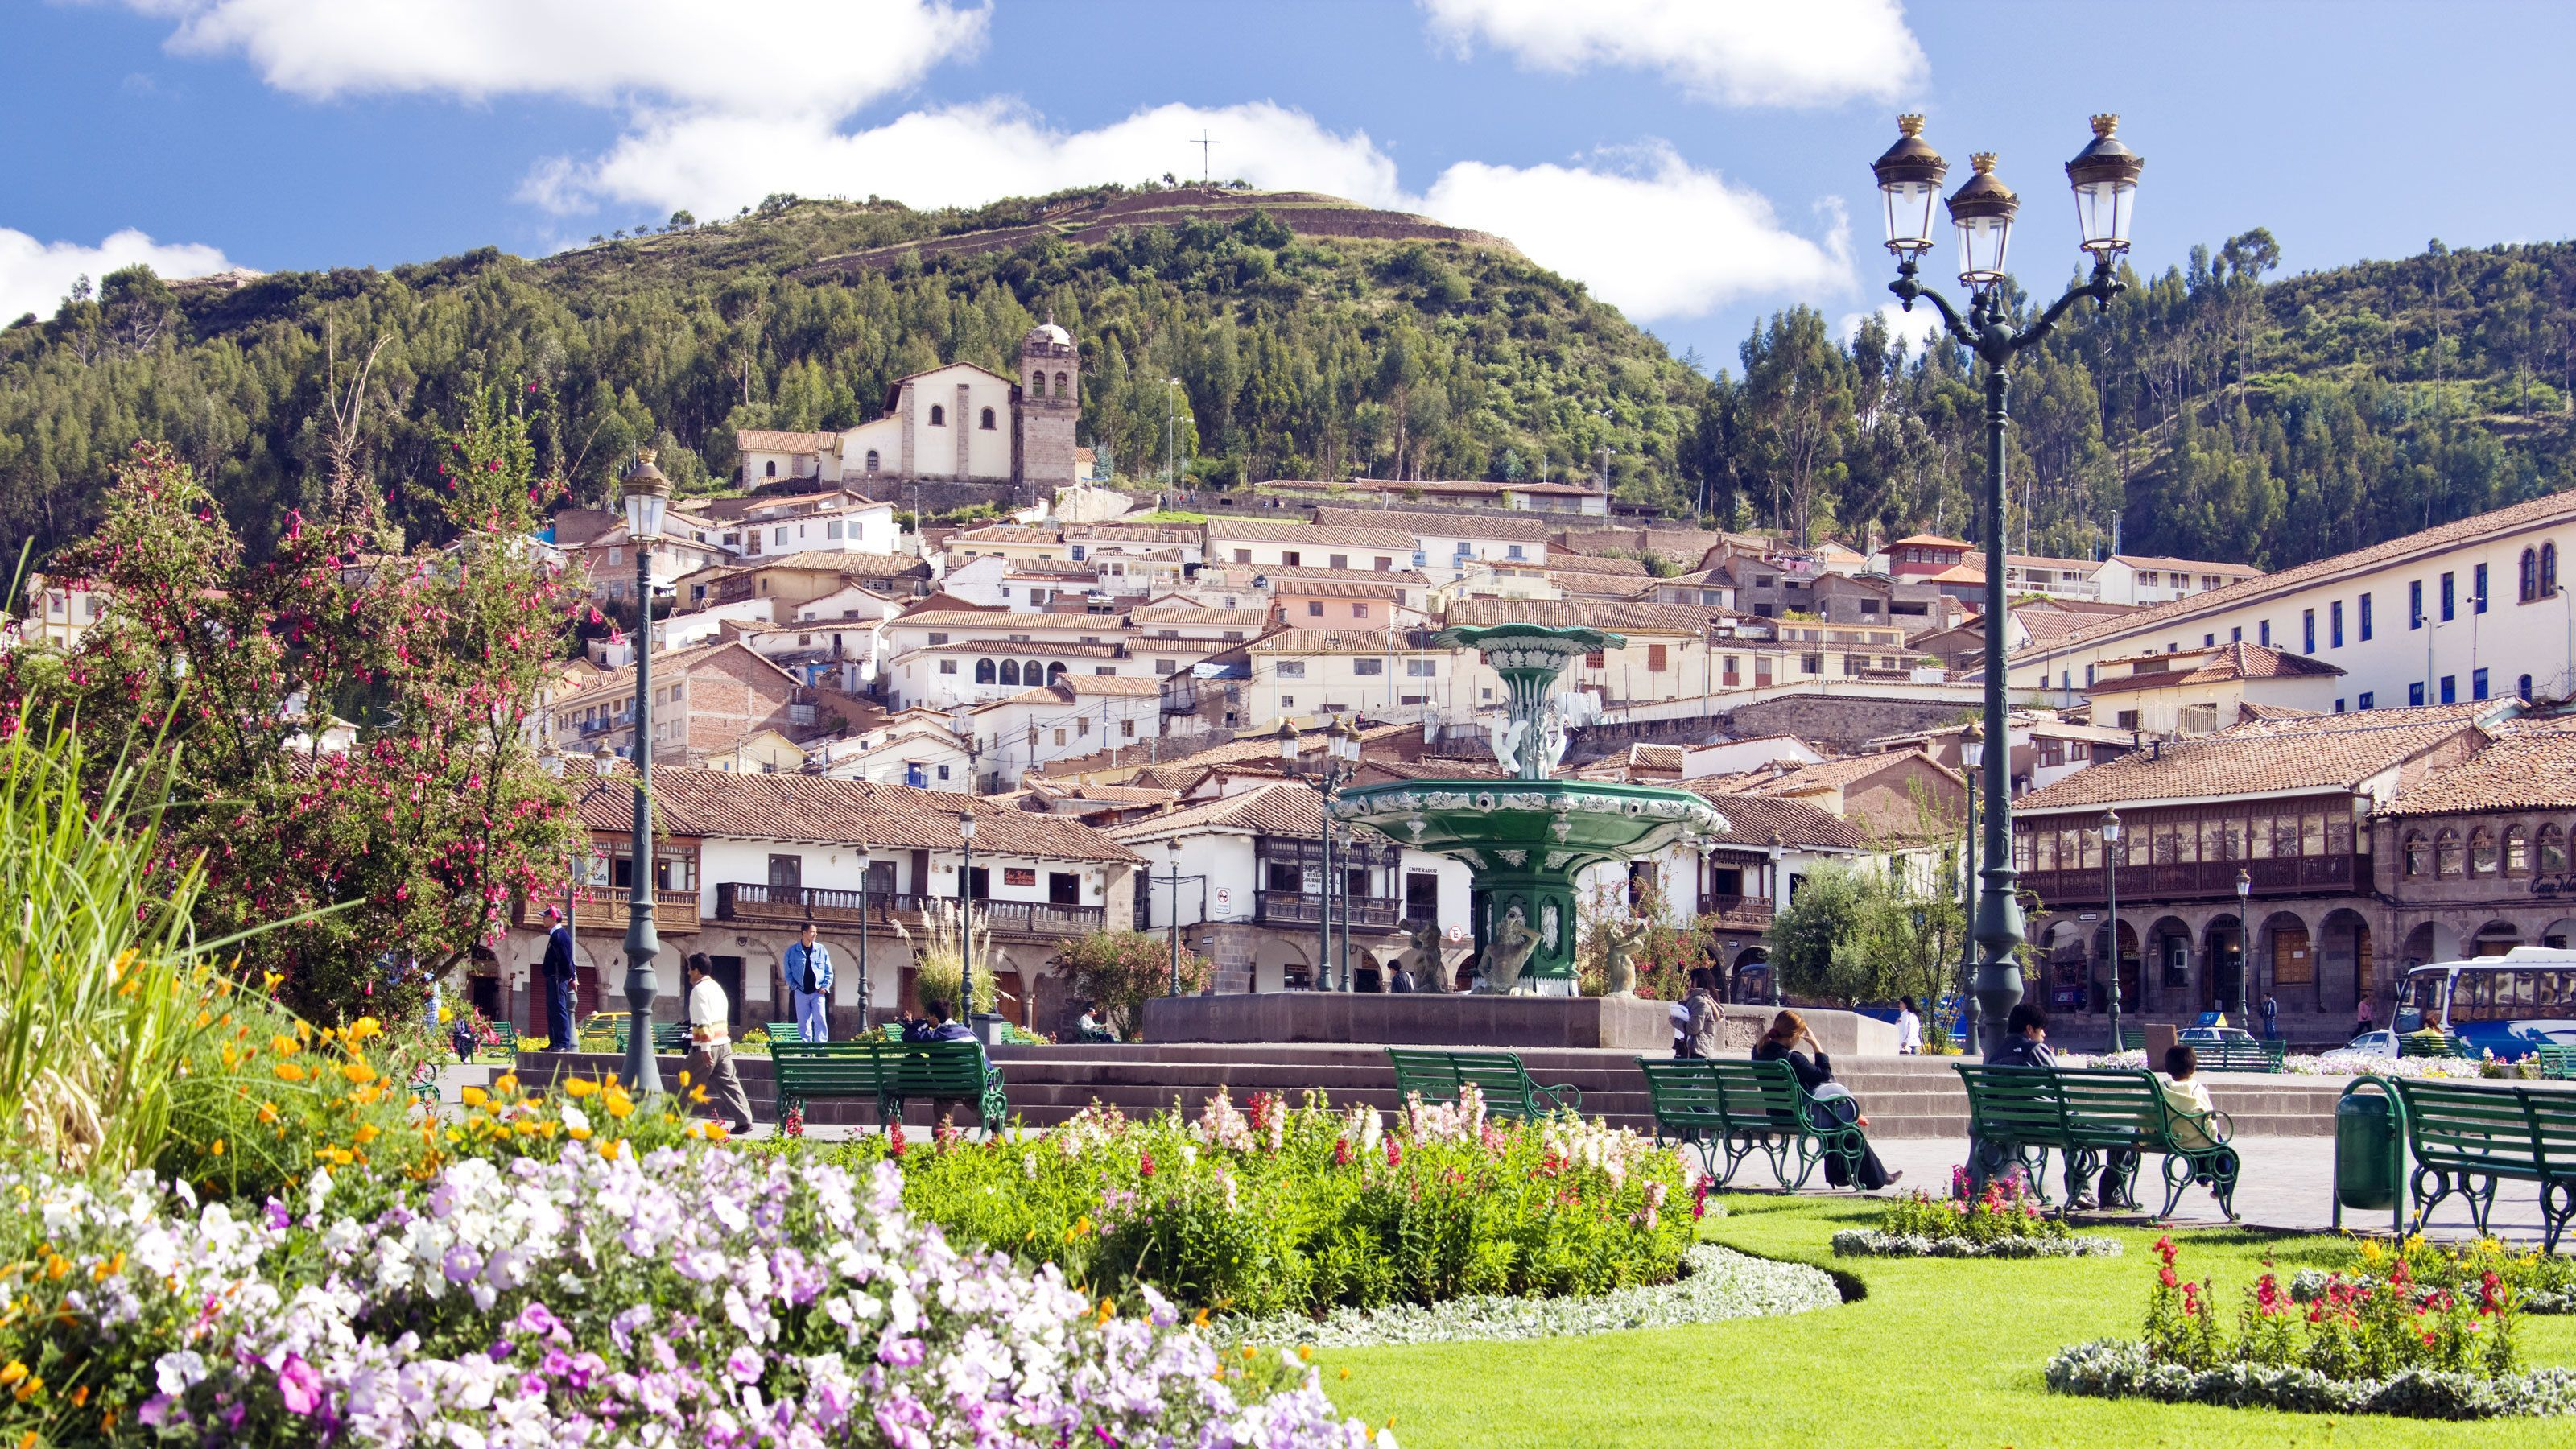 City Park in bright sunshine in the city of Cusco, Peru